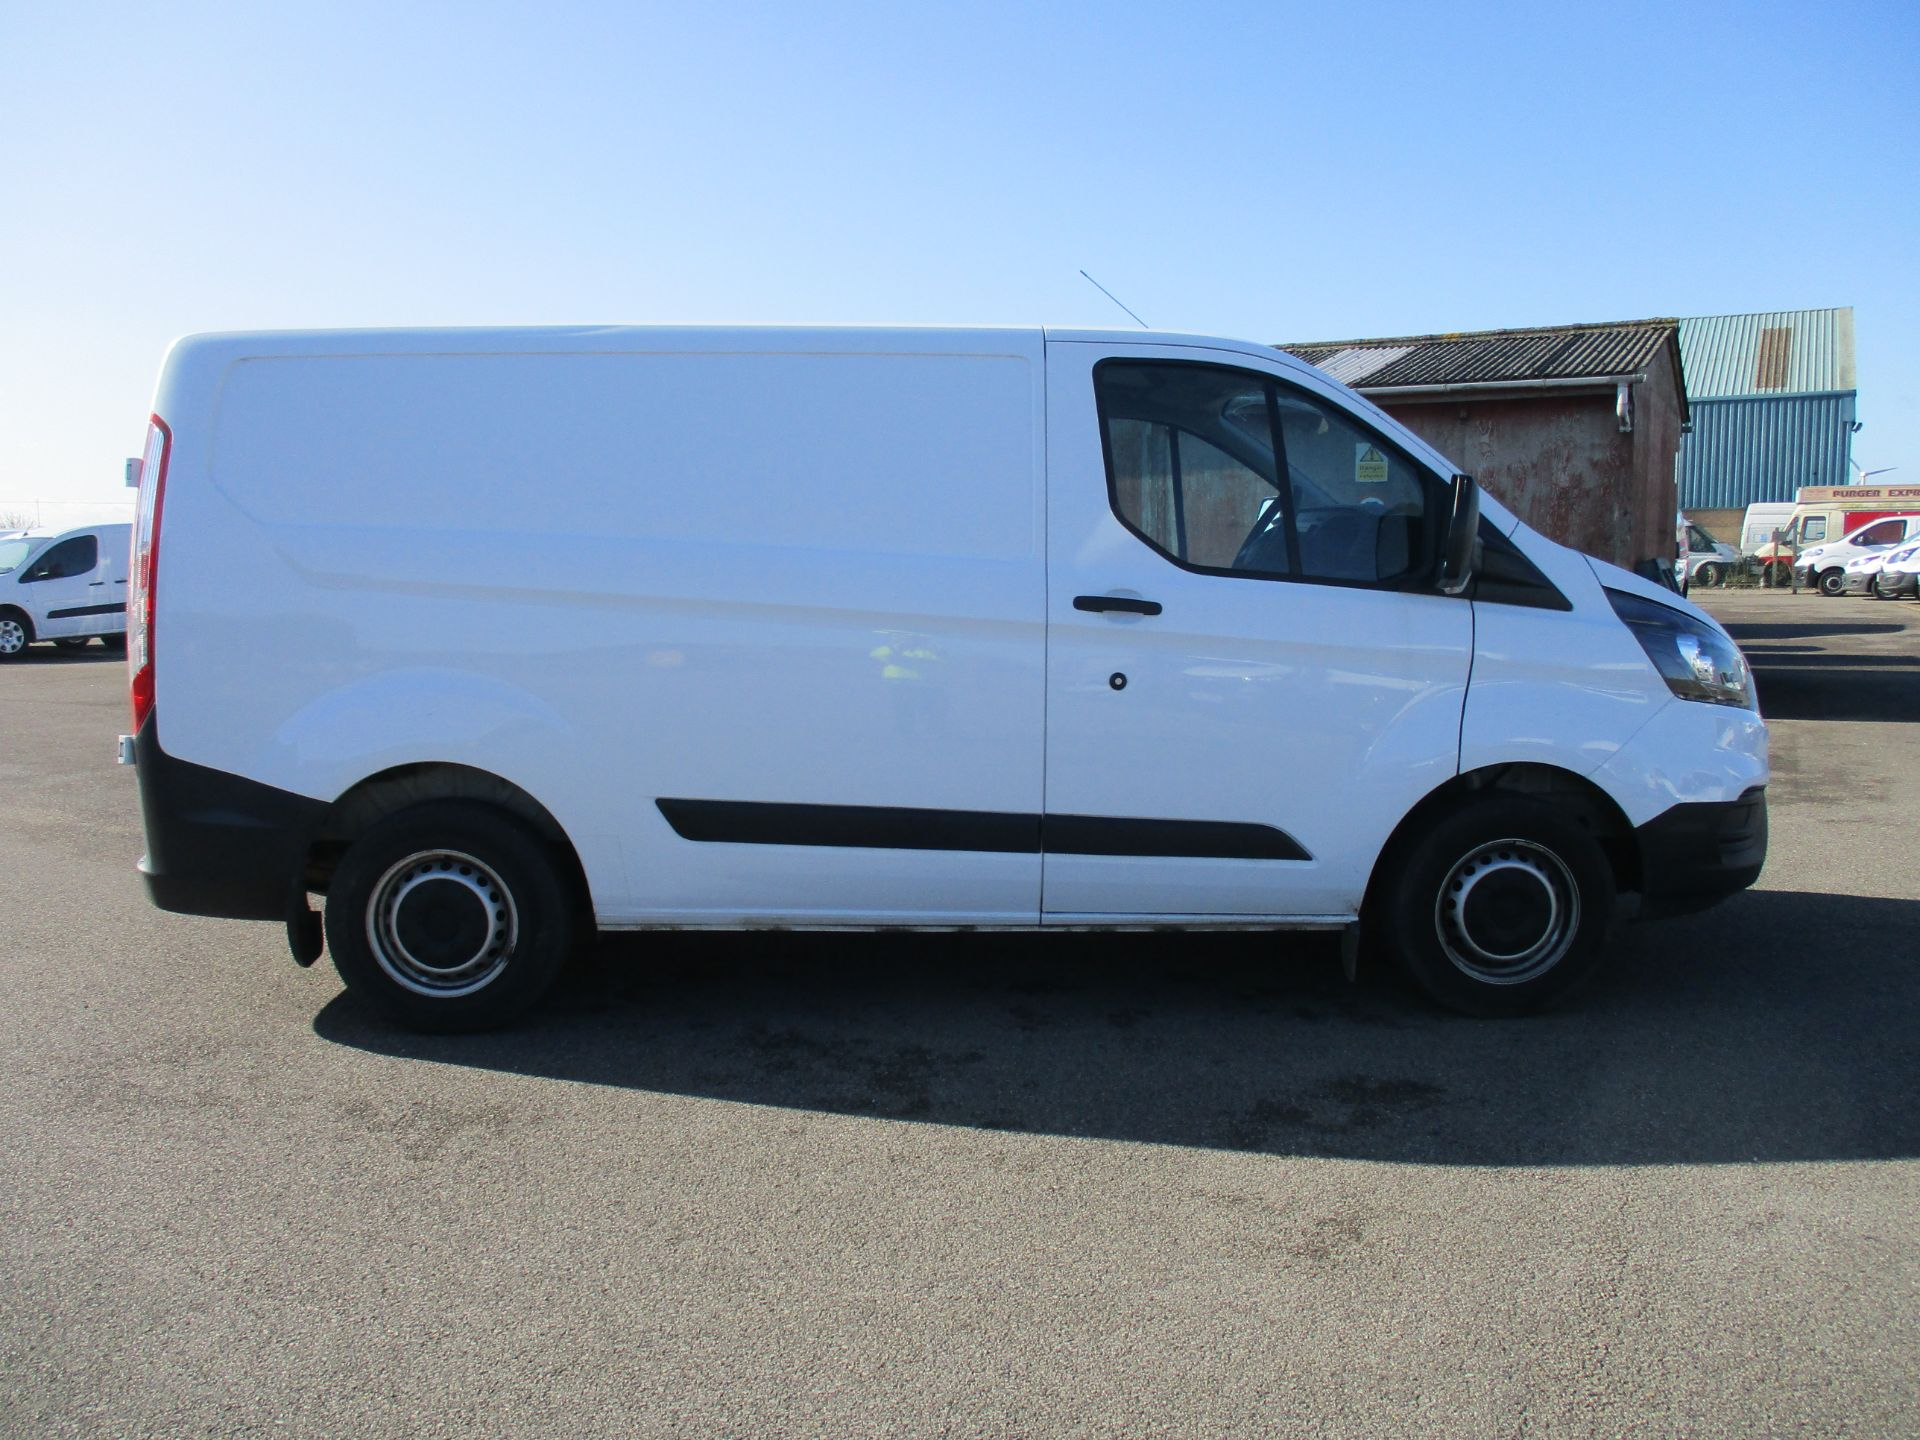 2018 Ford Transit Custom 300 L1 DIESEL FWD 2.0 TDCI 105PS LOW ROOF VAN EURO 6 (FP18BTX) Thumbnail 4